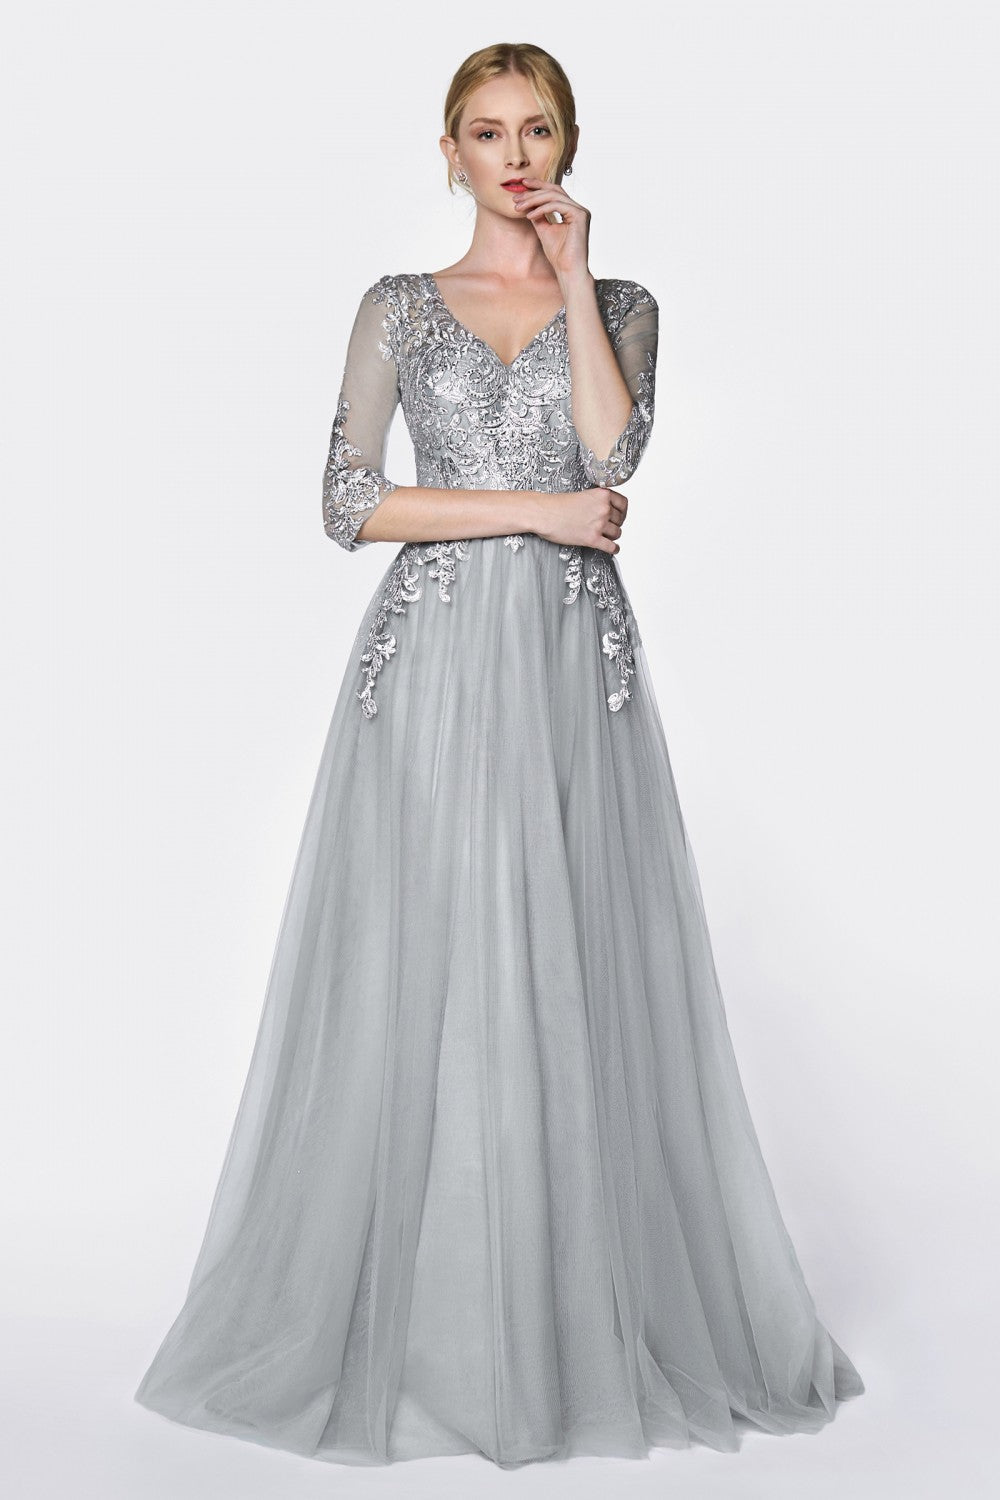 Flowy A-Line Tulle Gown With Three Quarter Sleeve And Lace Bodice